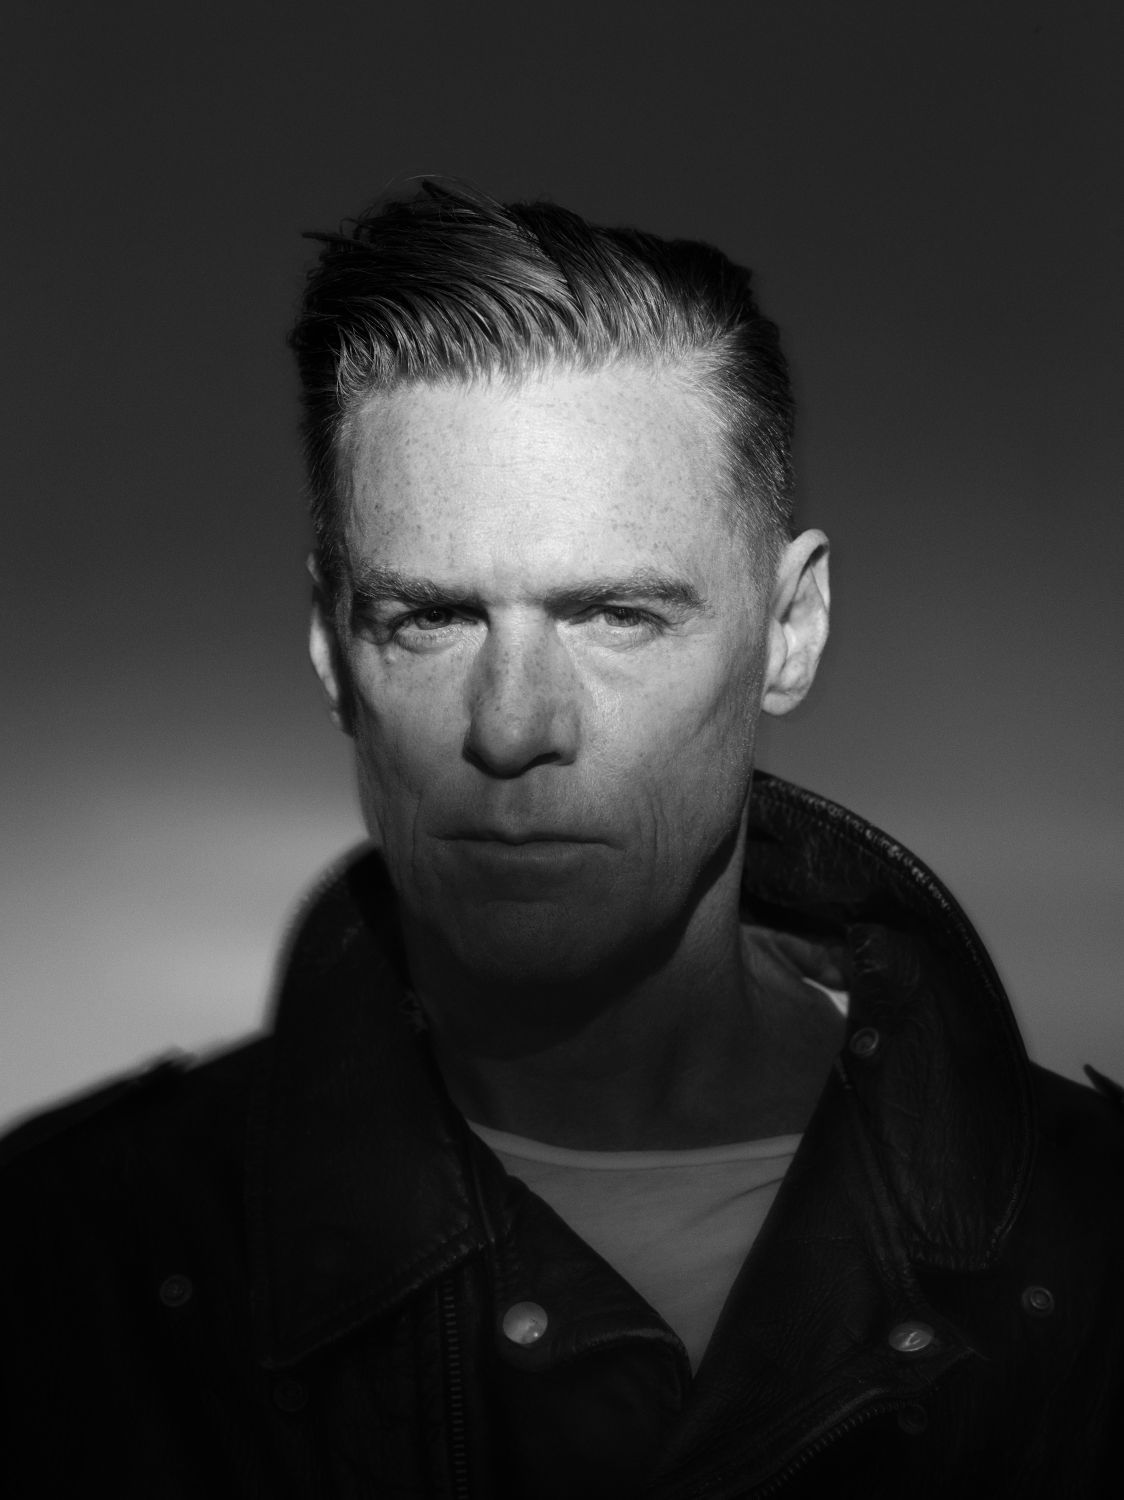 11 questions  and a few more  with bryan adams